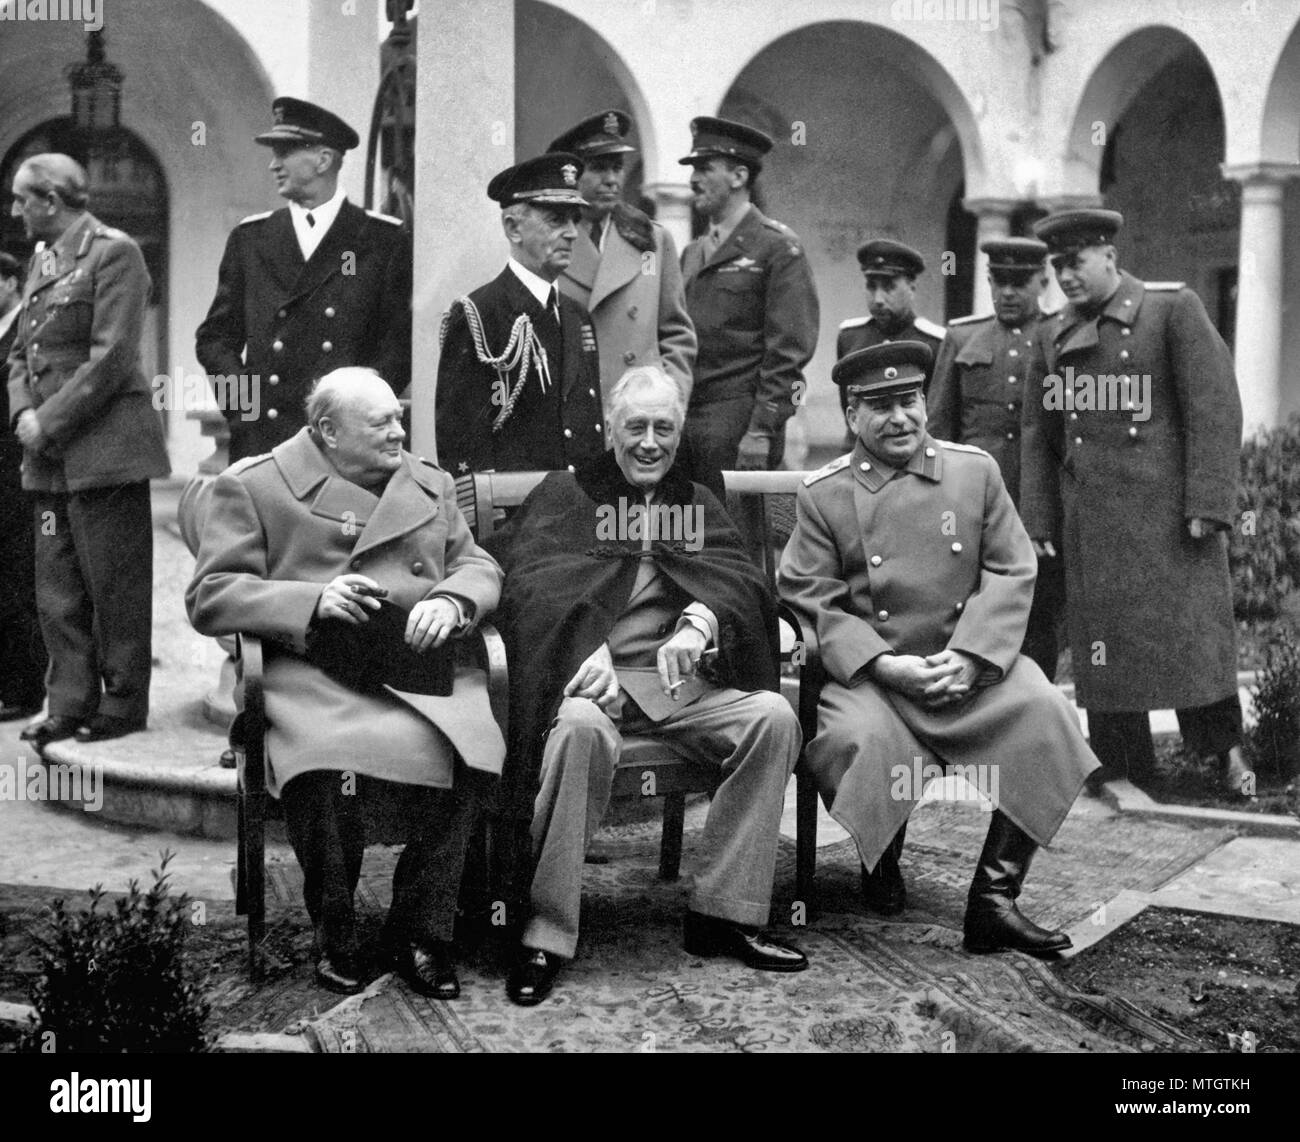 British Prime Minister Winston Churchill, U.S. President Franklin Roosevelt, and Soviet leader Joseph Stalin met at Yalta in February 1945 to discuss their joint occupation of Germany and plans for postwar Europe. Behind them stand, from the left, Field Marshal Sir Alan Brooke, Fleet Admiral Ernest King, Fleet Admiral William D. Leahy, General of the Army George Marshall, Major General Laurence S. Kuter, General Aleksei Antonov, Vice Admiral Stepan Kucherov, and Admiral of the Fleet Nikolay Kuznetsov. February 1945. Stock Photo